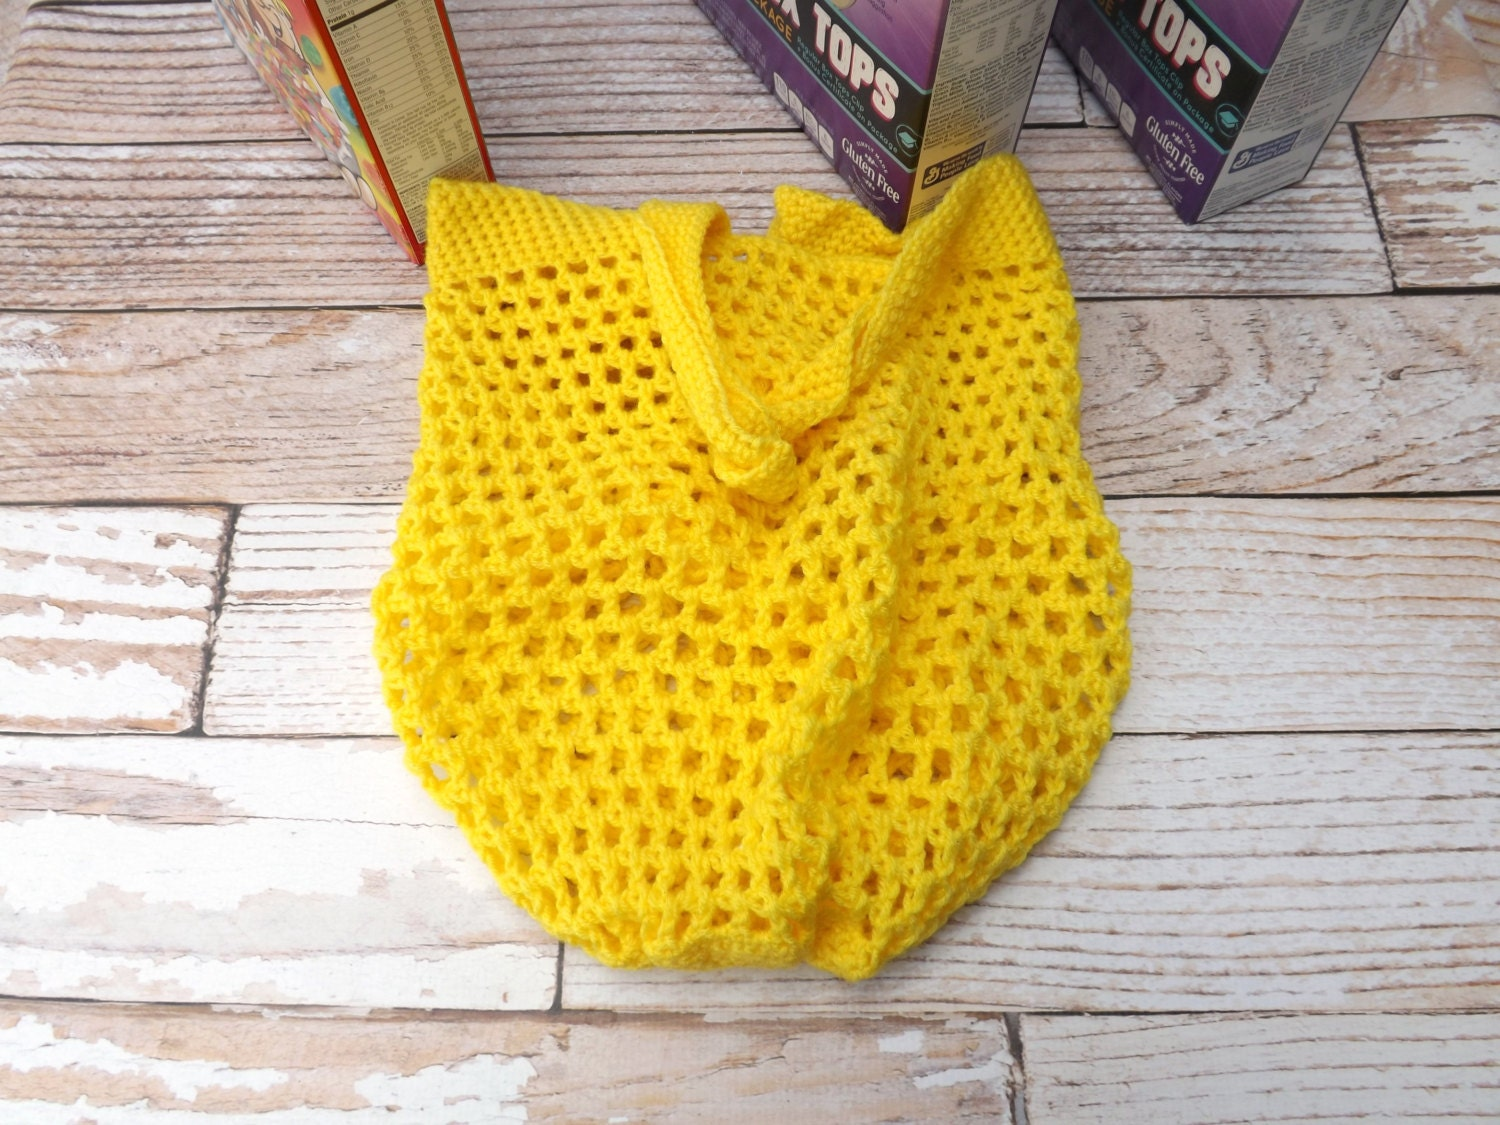 CROCHET PATTERN - Reusable Grocery Bag - Pattern for beach bag ...